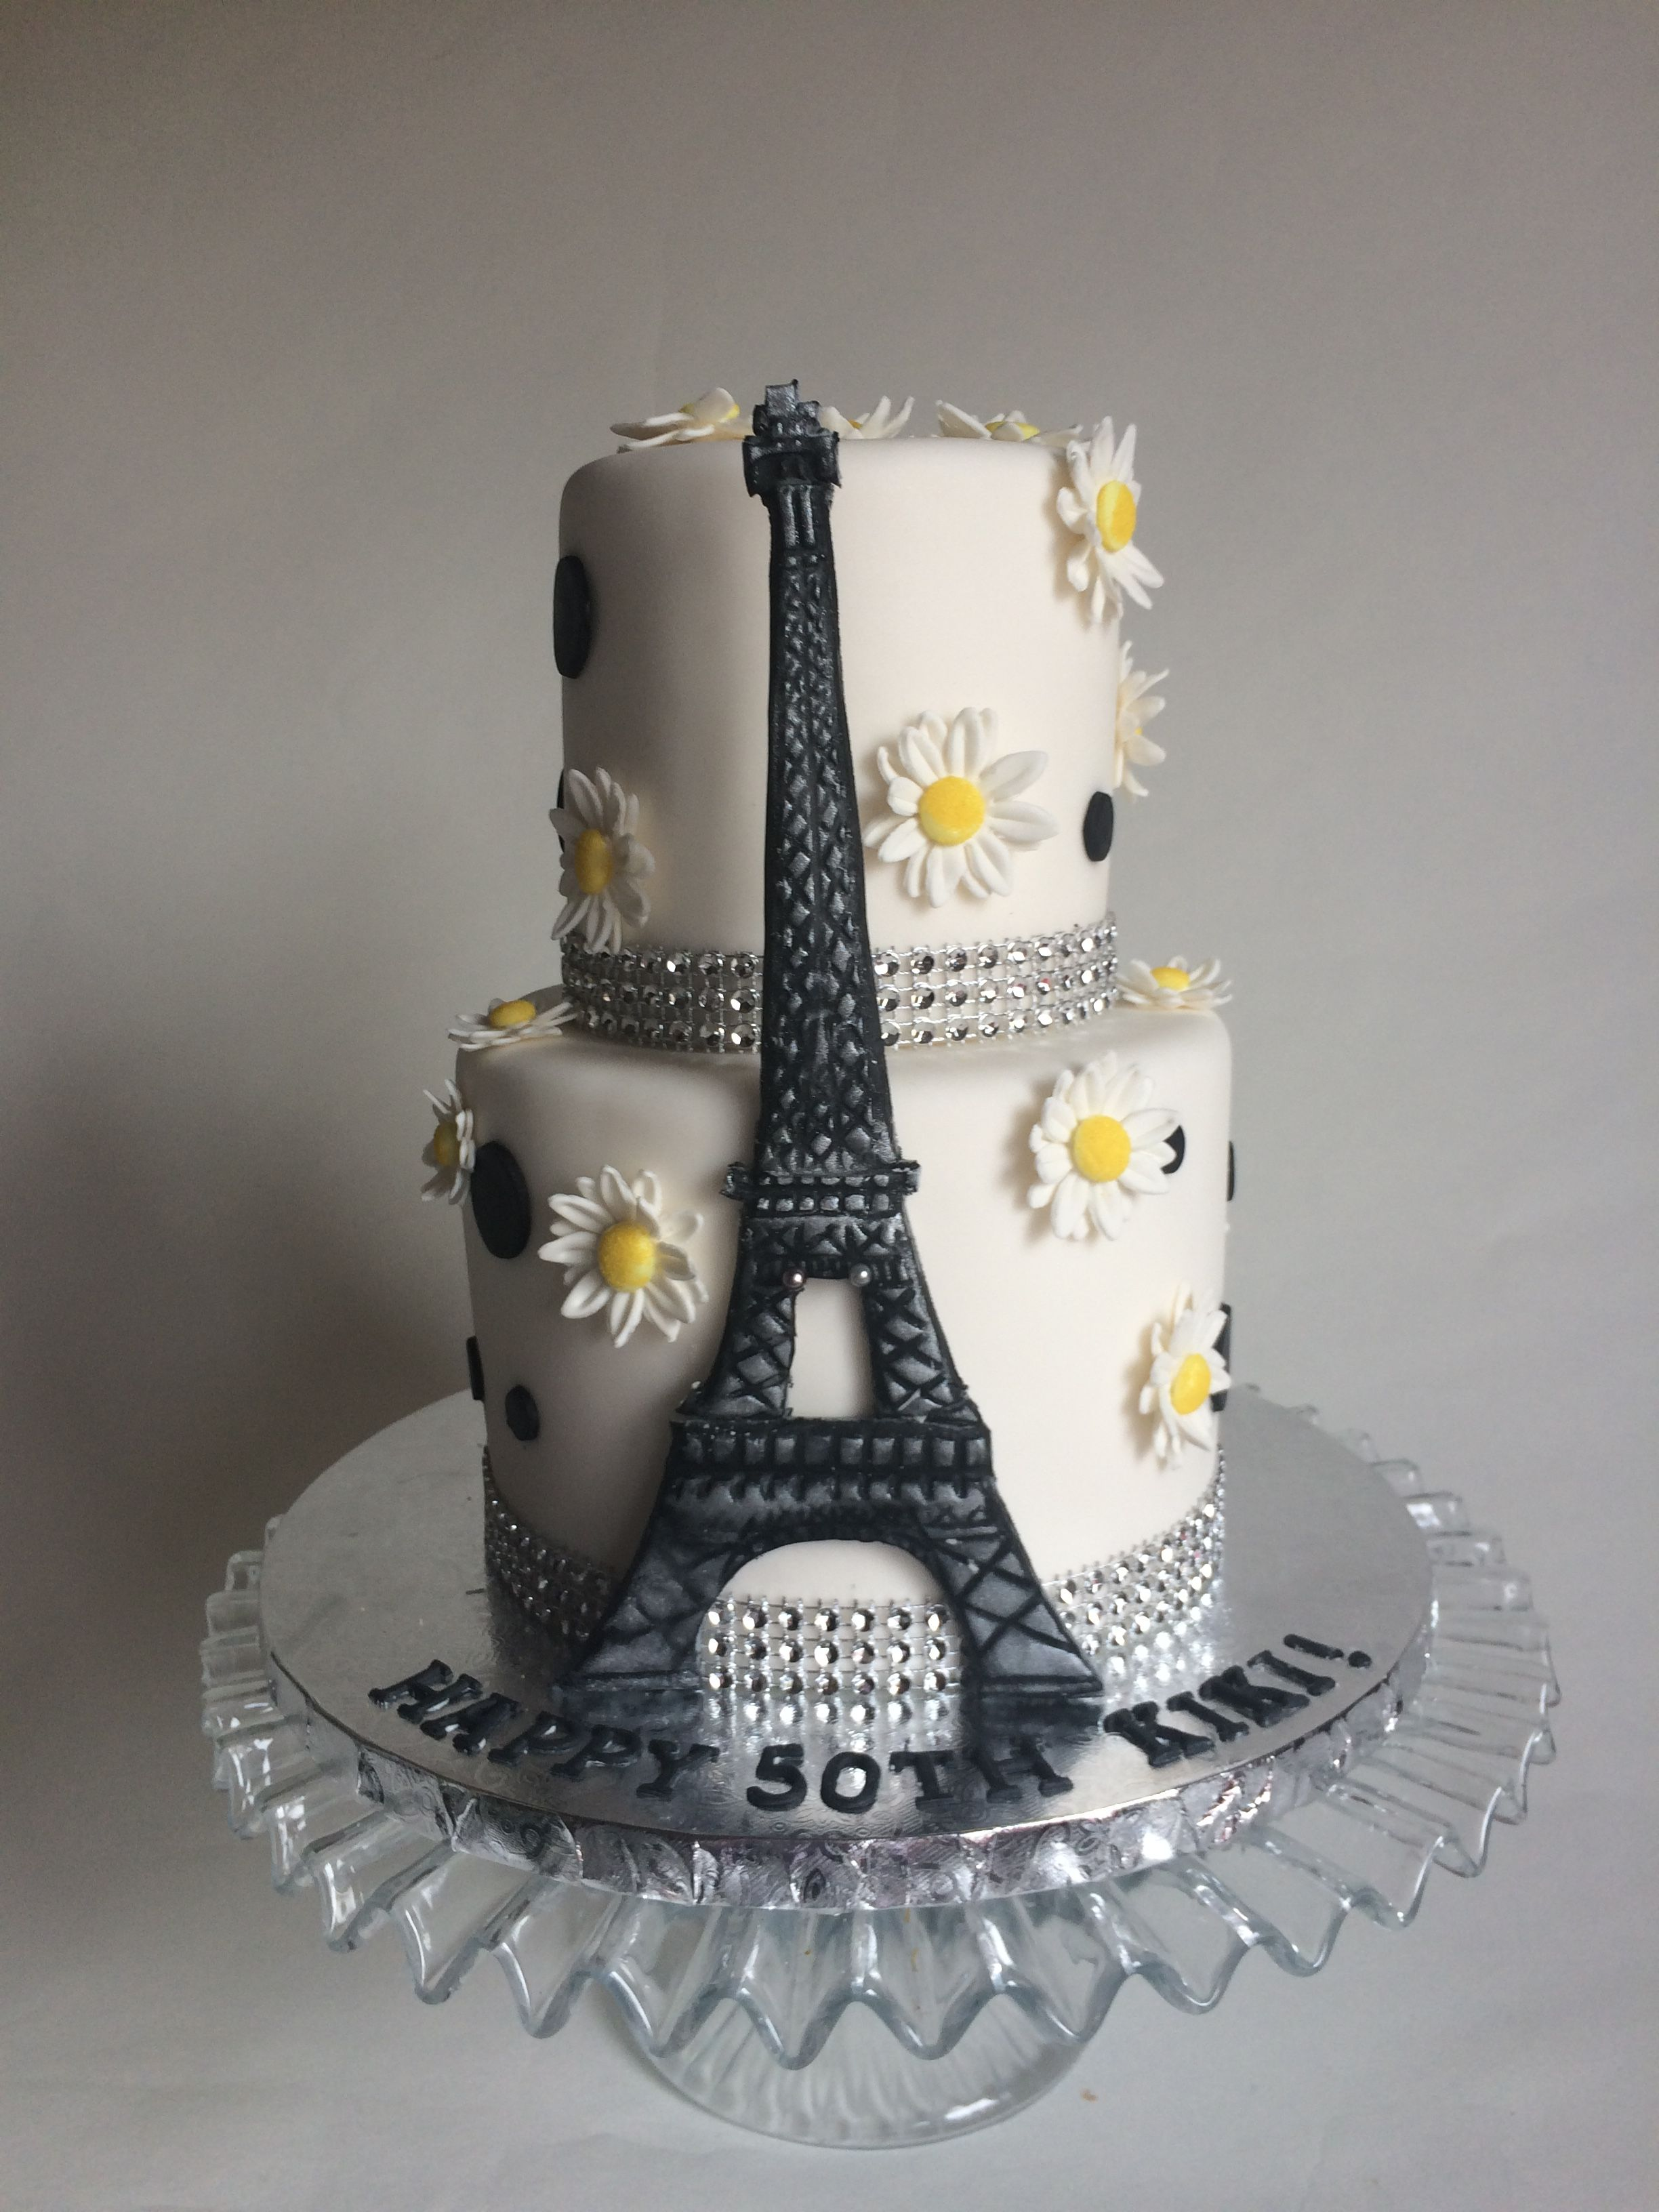 Wondrous Spring In Paris Themed Birthday Cake With Eiffel Tower And Polka Funny Birthday Cards Online Fluifree Goldxyz